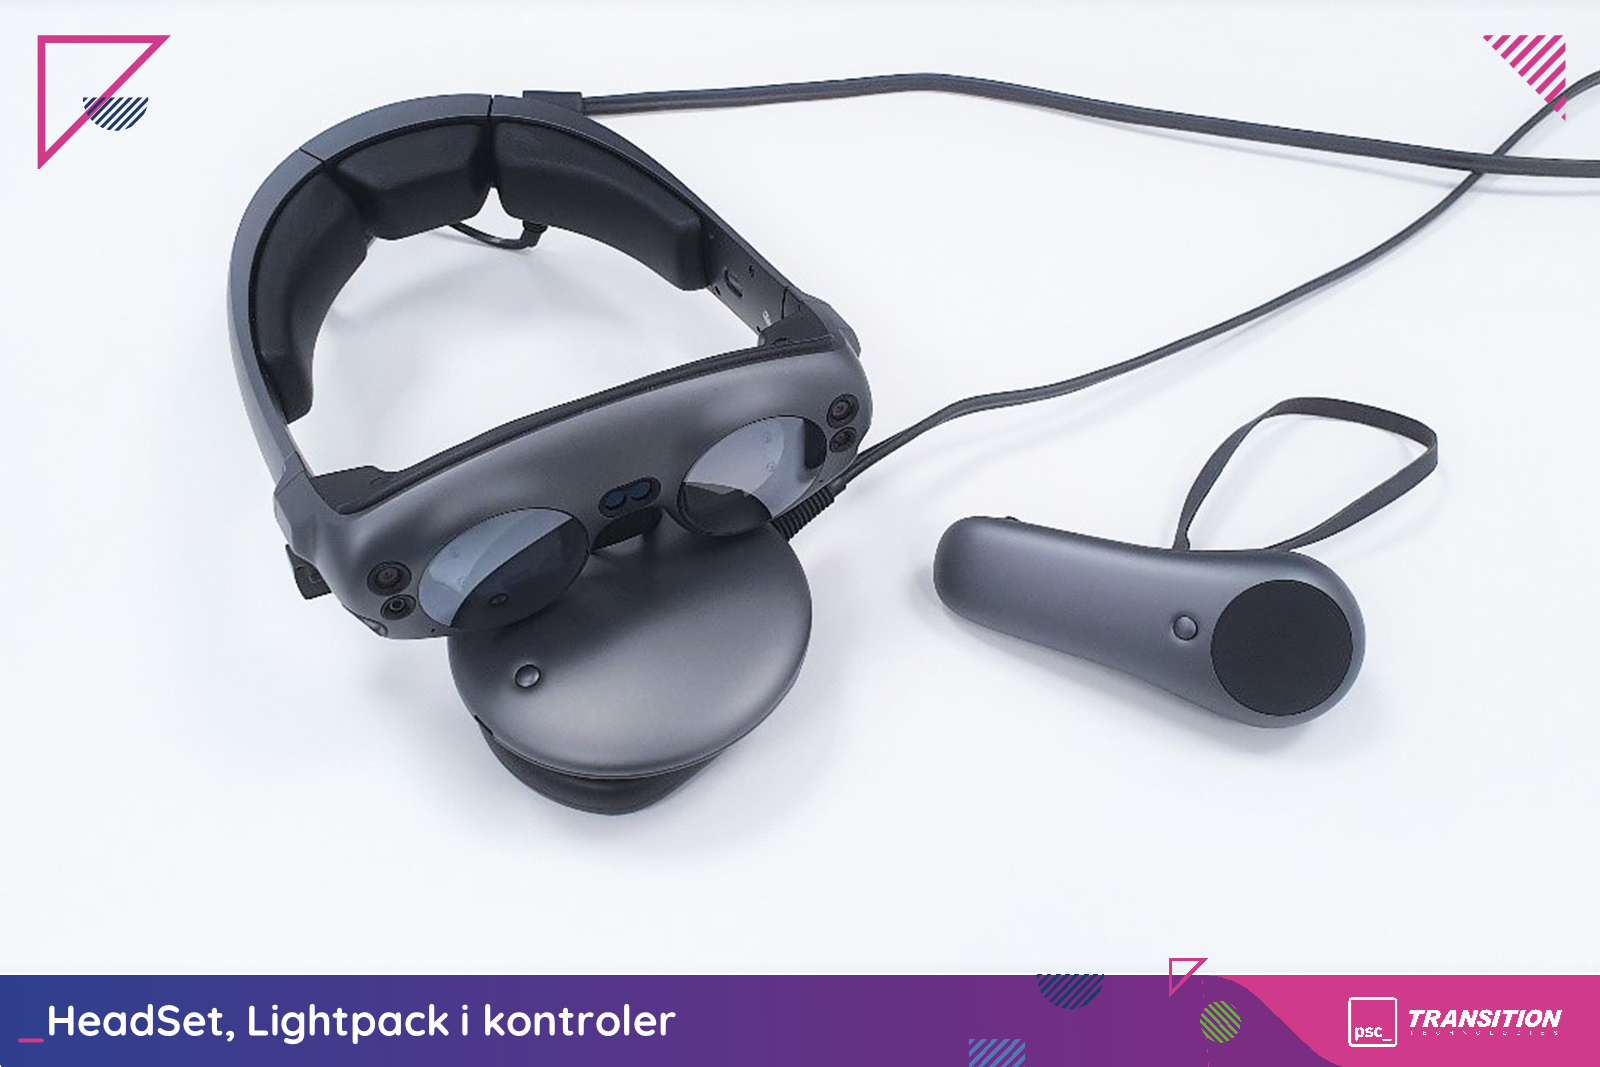 Magic Leap Headset lightpack i kontroler